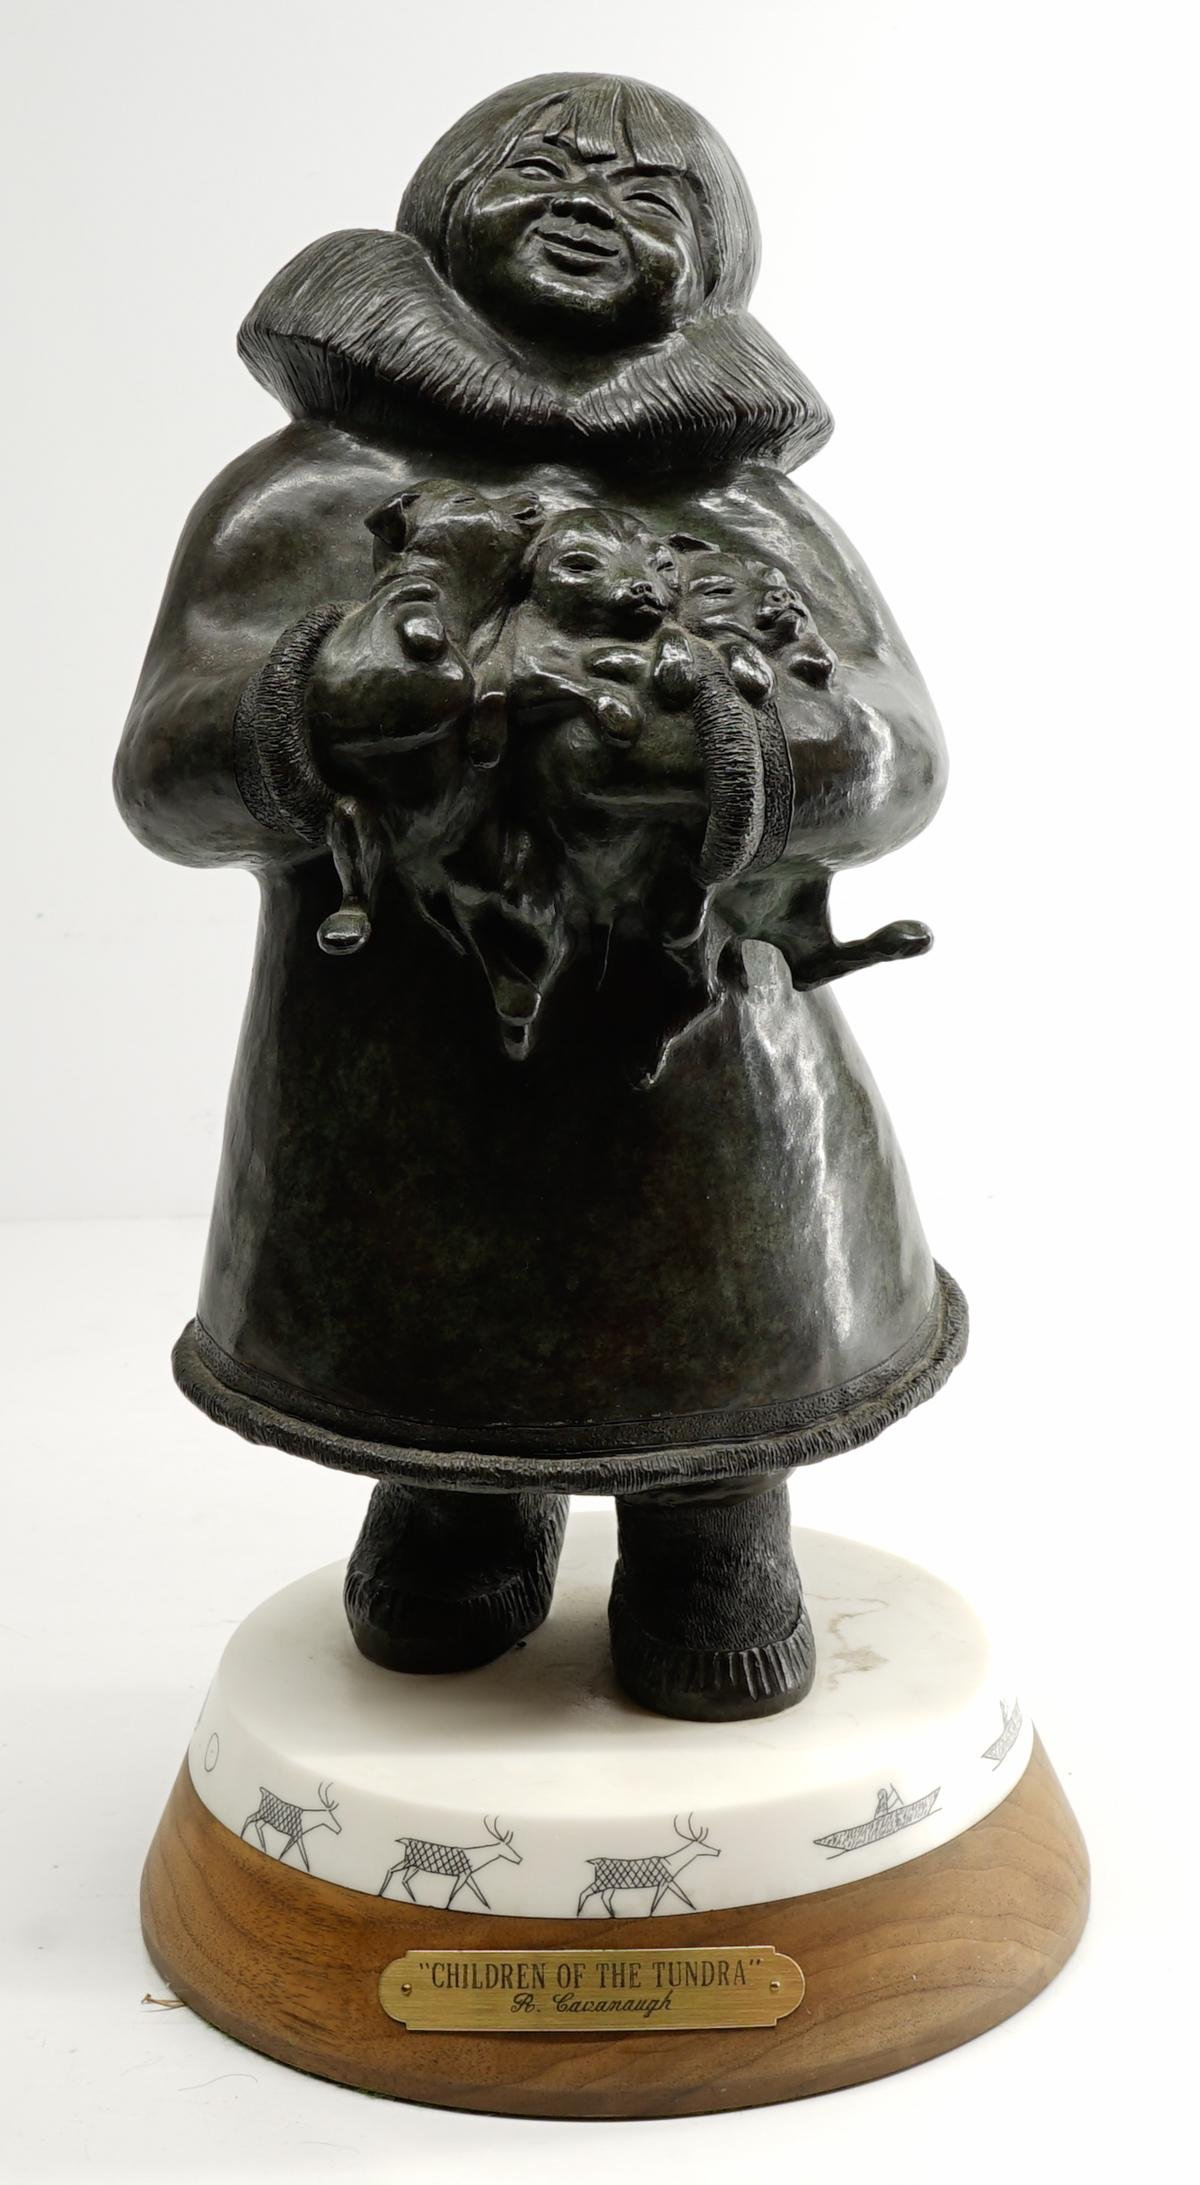 Robert Cavanaugh Signed and Numbered Bronze